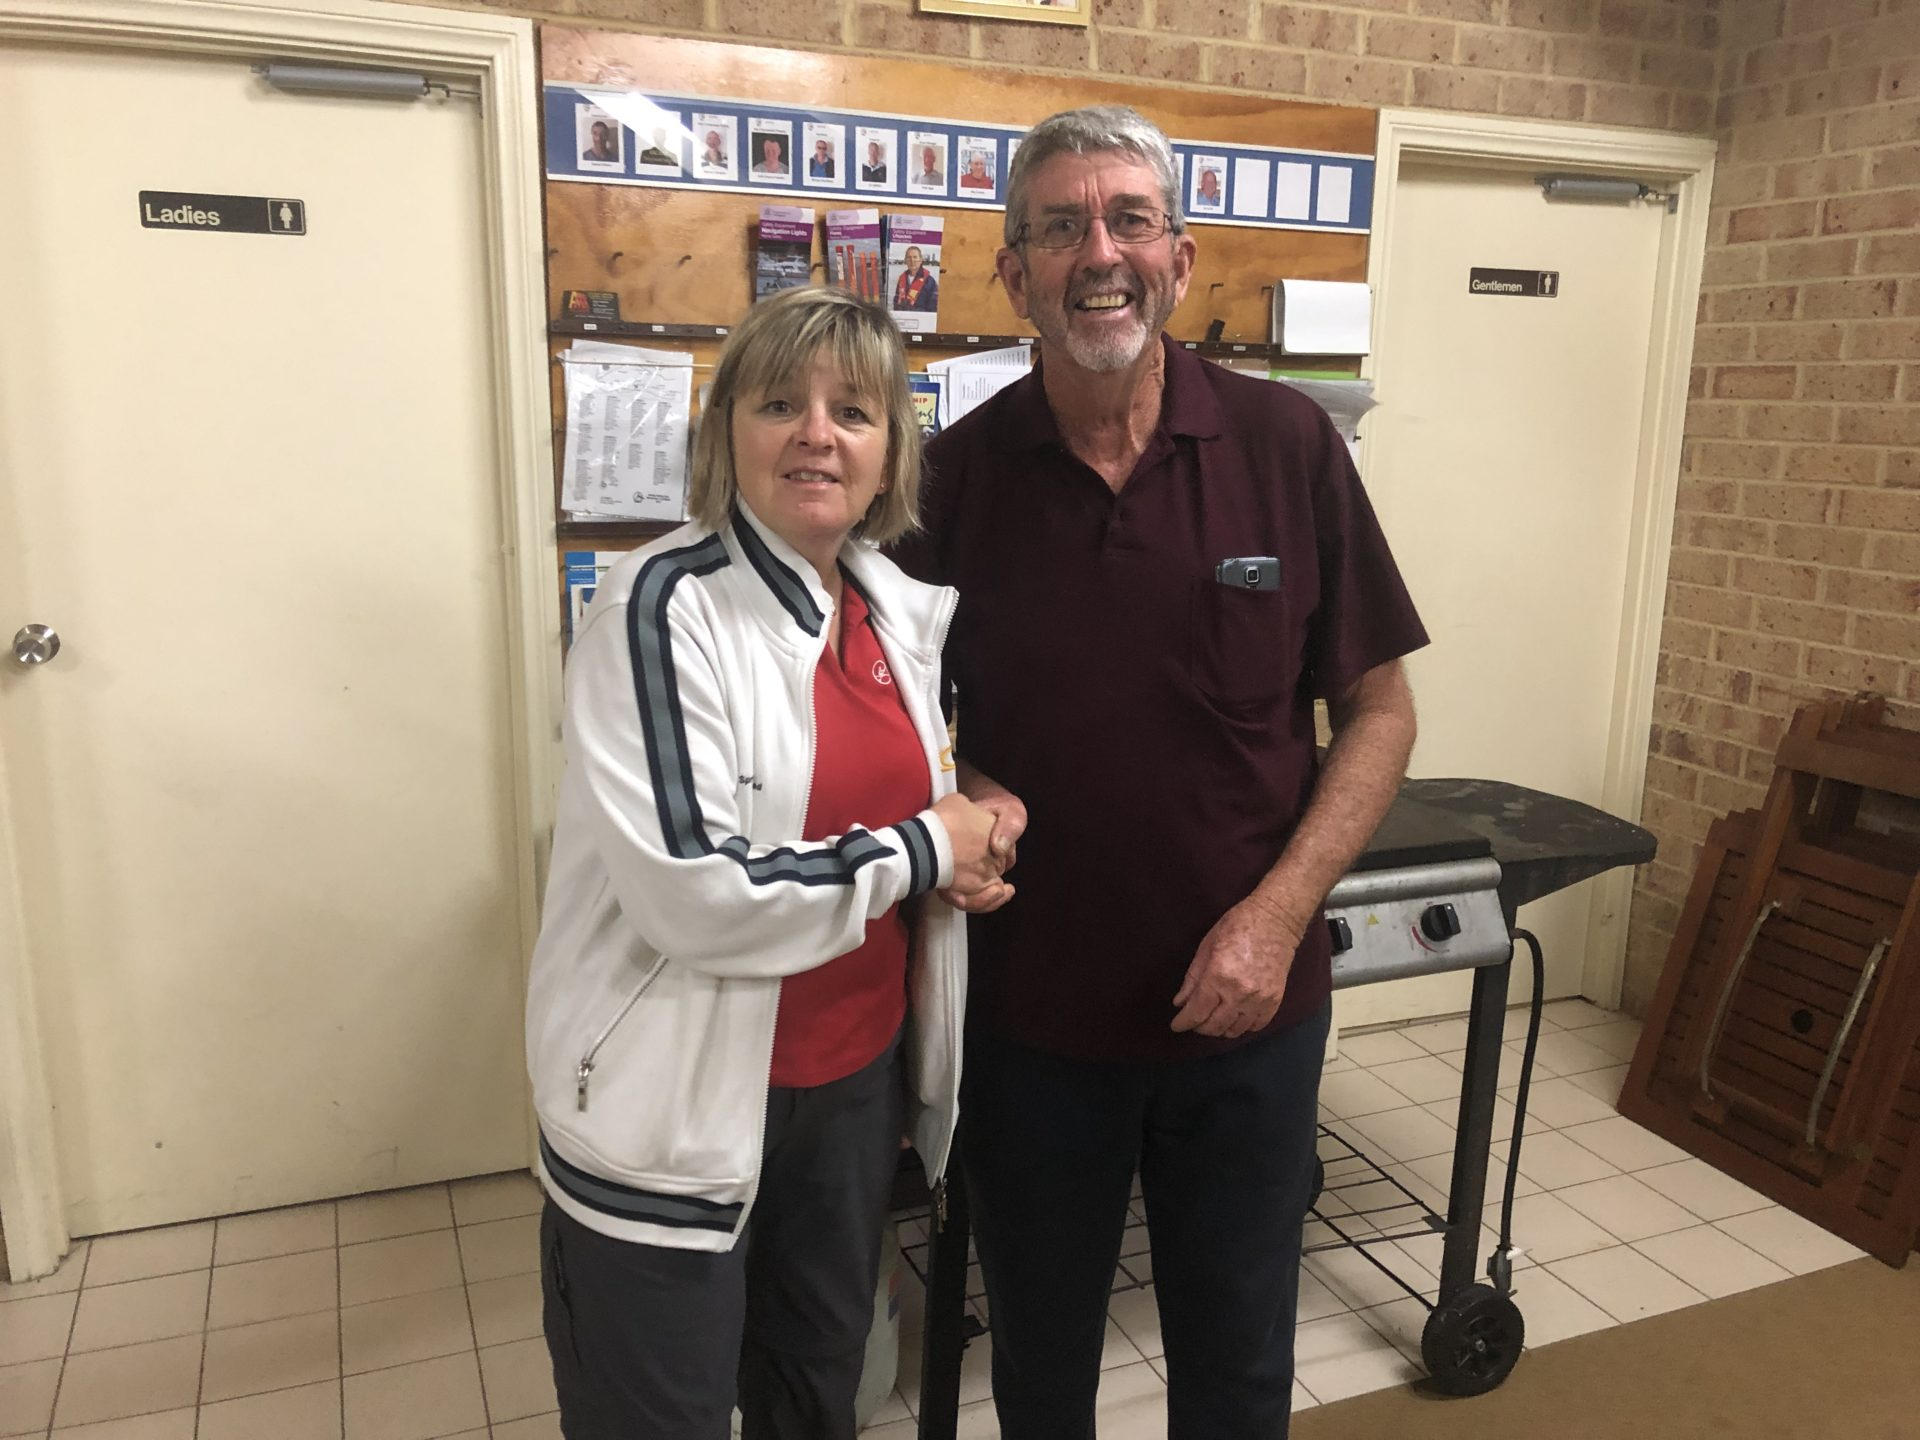 Tuesday 10th September 2019 : Tonight's photo shows club secretary Judith Thompson presenting tonight's winner David Griffiths with a movie voucher.